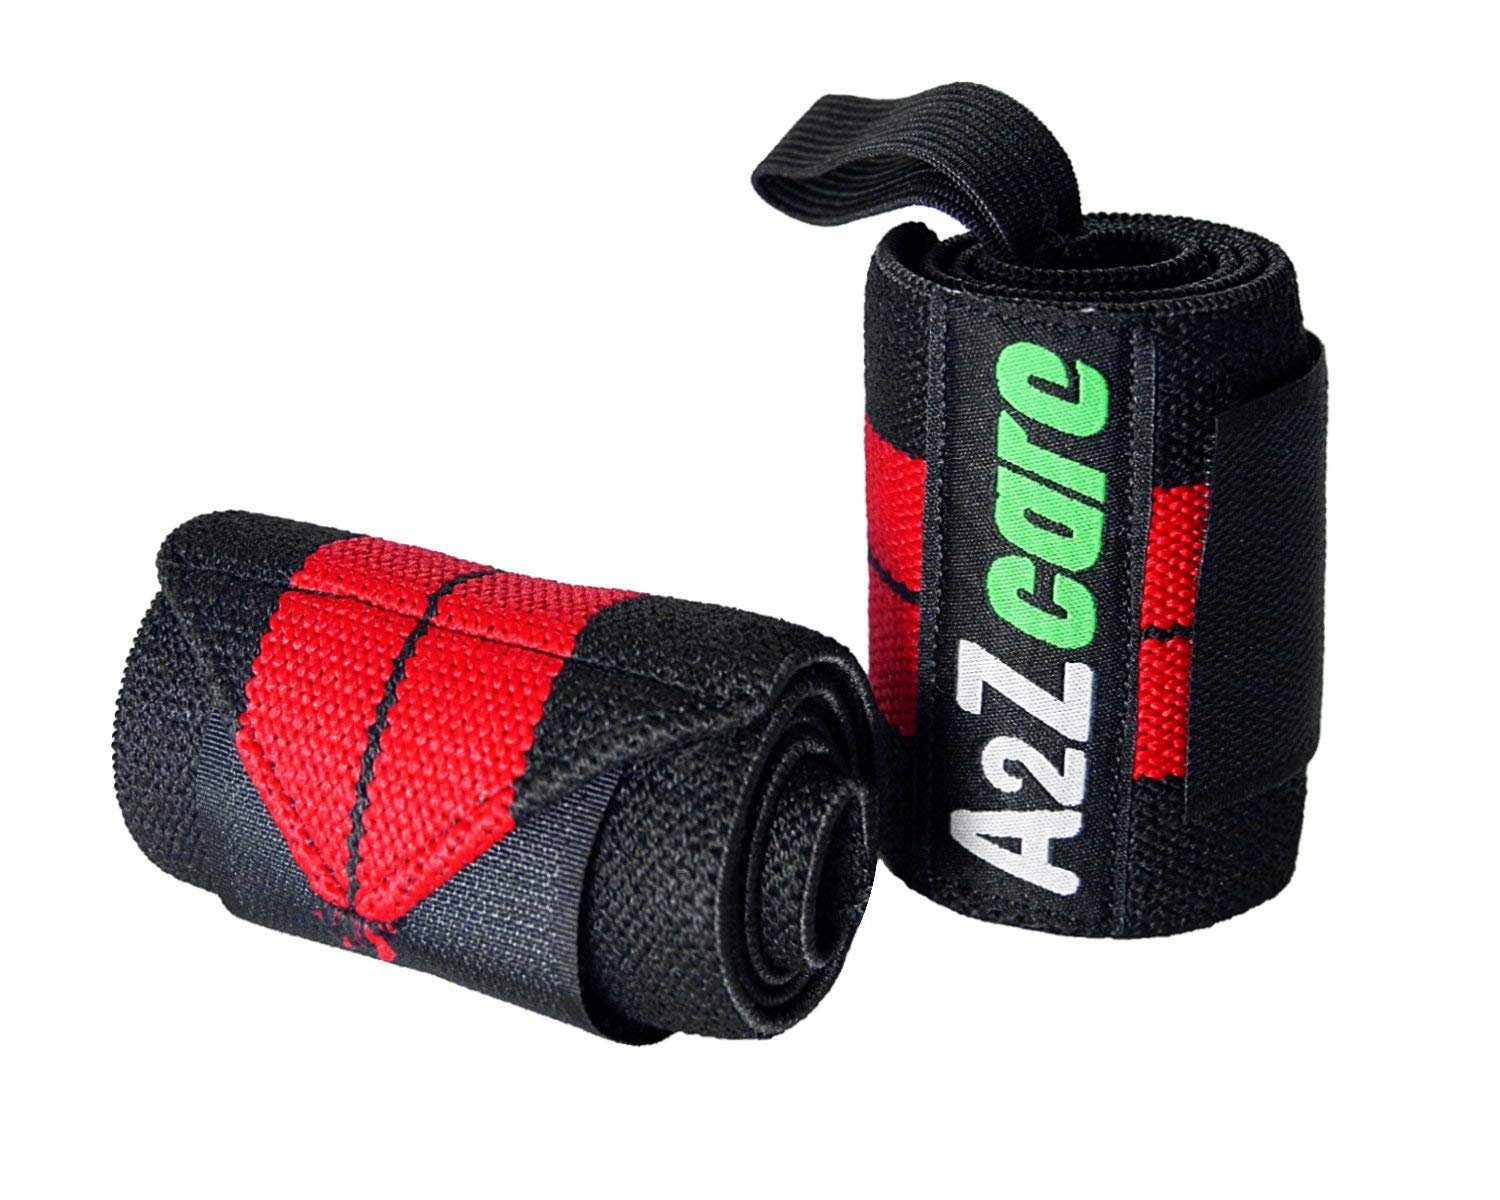 FP Pro Weight Lifting Training Gym Hook Grips Straps Gloves Wrist Support Lift